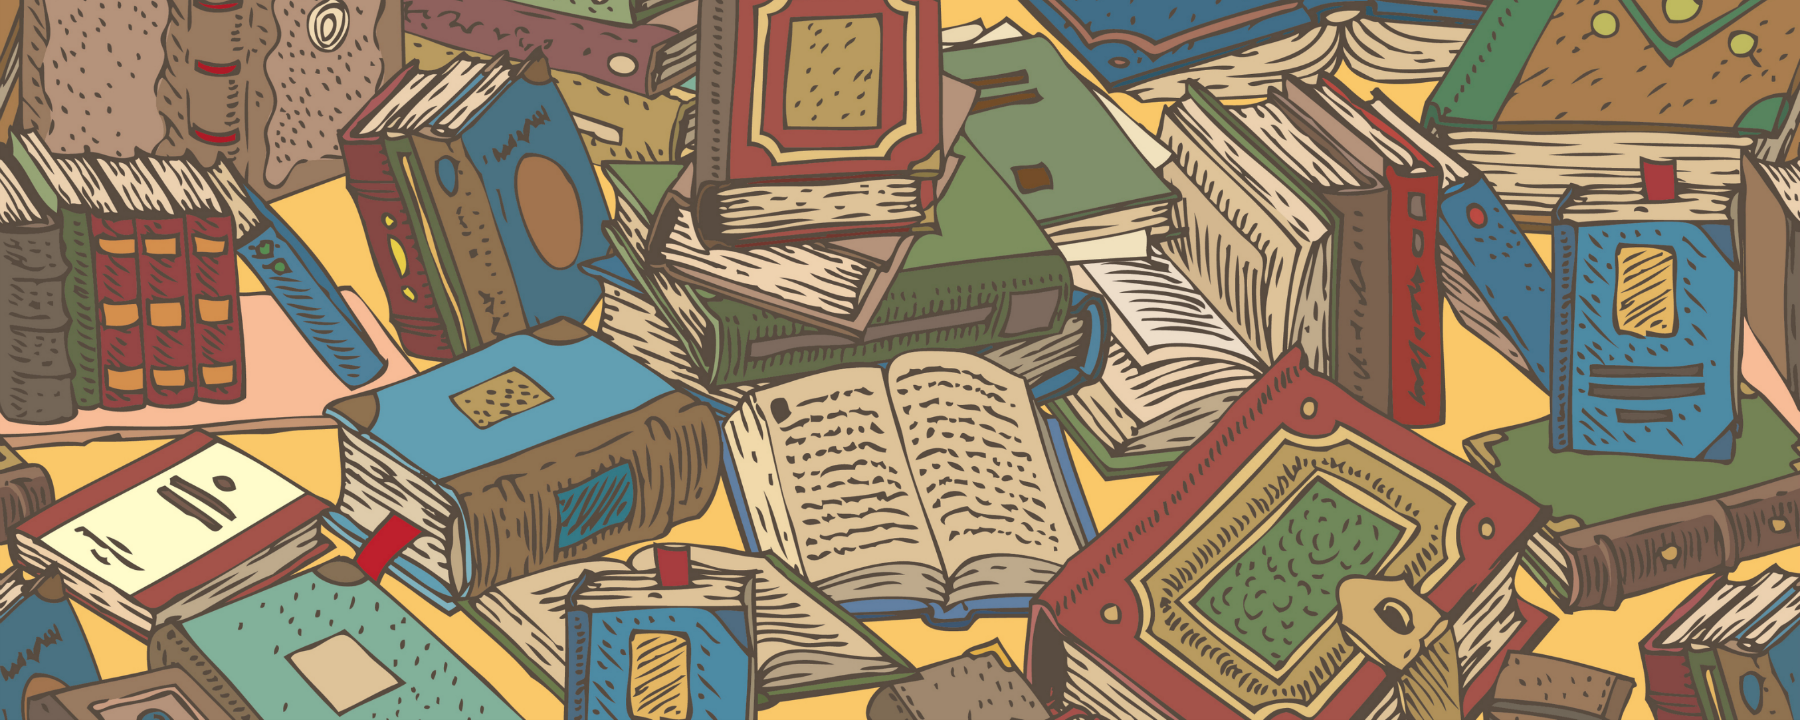 Opinion: The Best Neuroscience Books of 2019